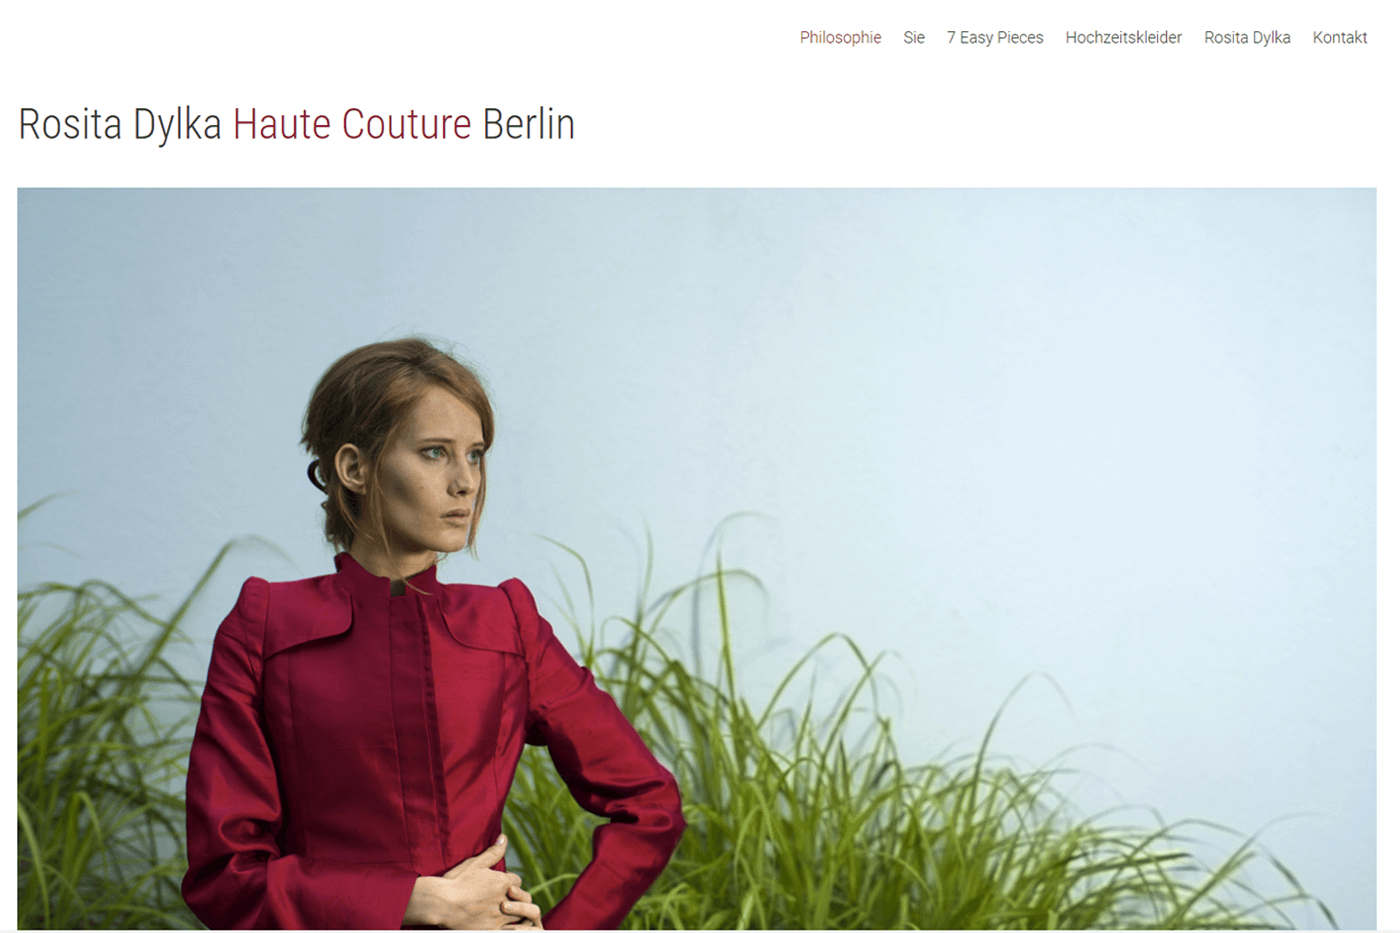 Website für Rosita Dylka Haute Couture Berlin